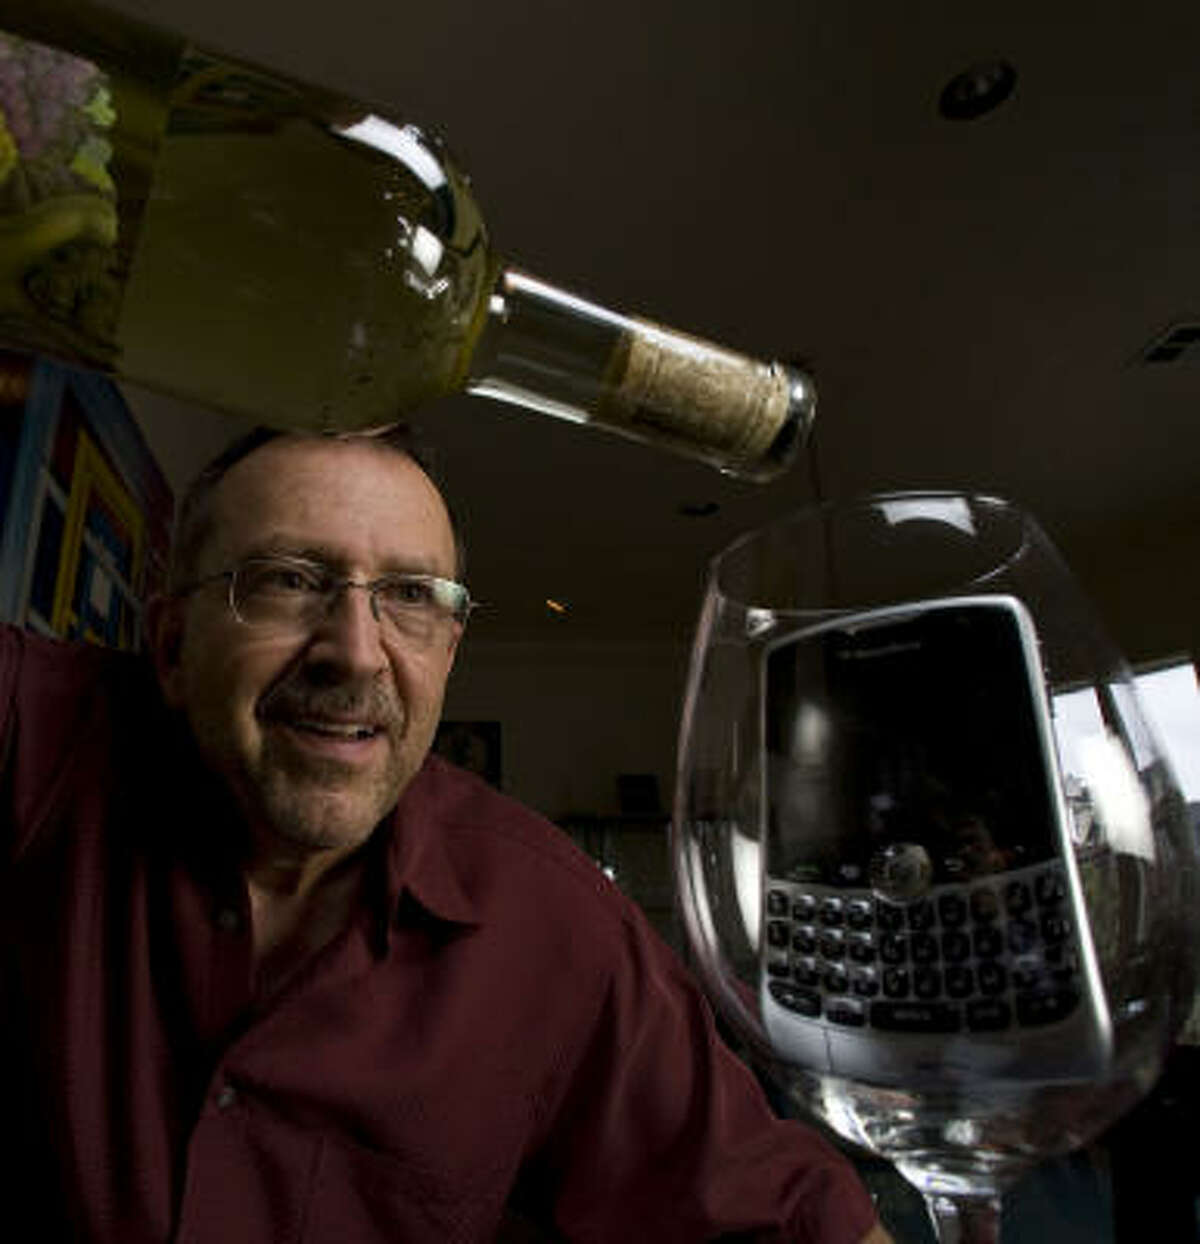 """Russ Kane, pictured, is a writer, blogger and dedicated Texas oenophile who collaborated with Messina Hof impresario Paul Bonarrigo on the """"Judgment of Bryan, Texas,"""" a tasting that was conducted """"live"""" via Twitter."""